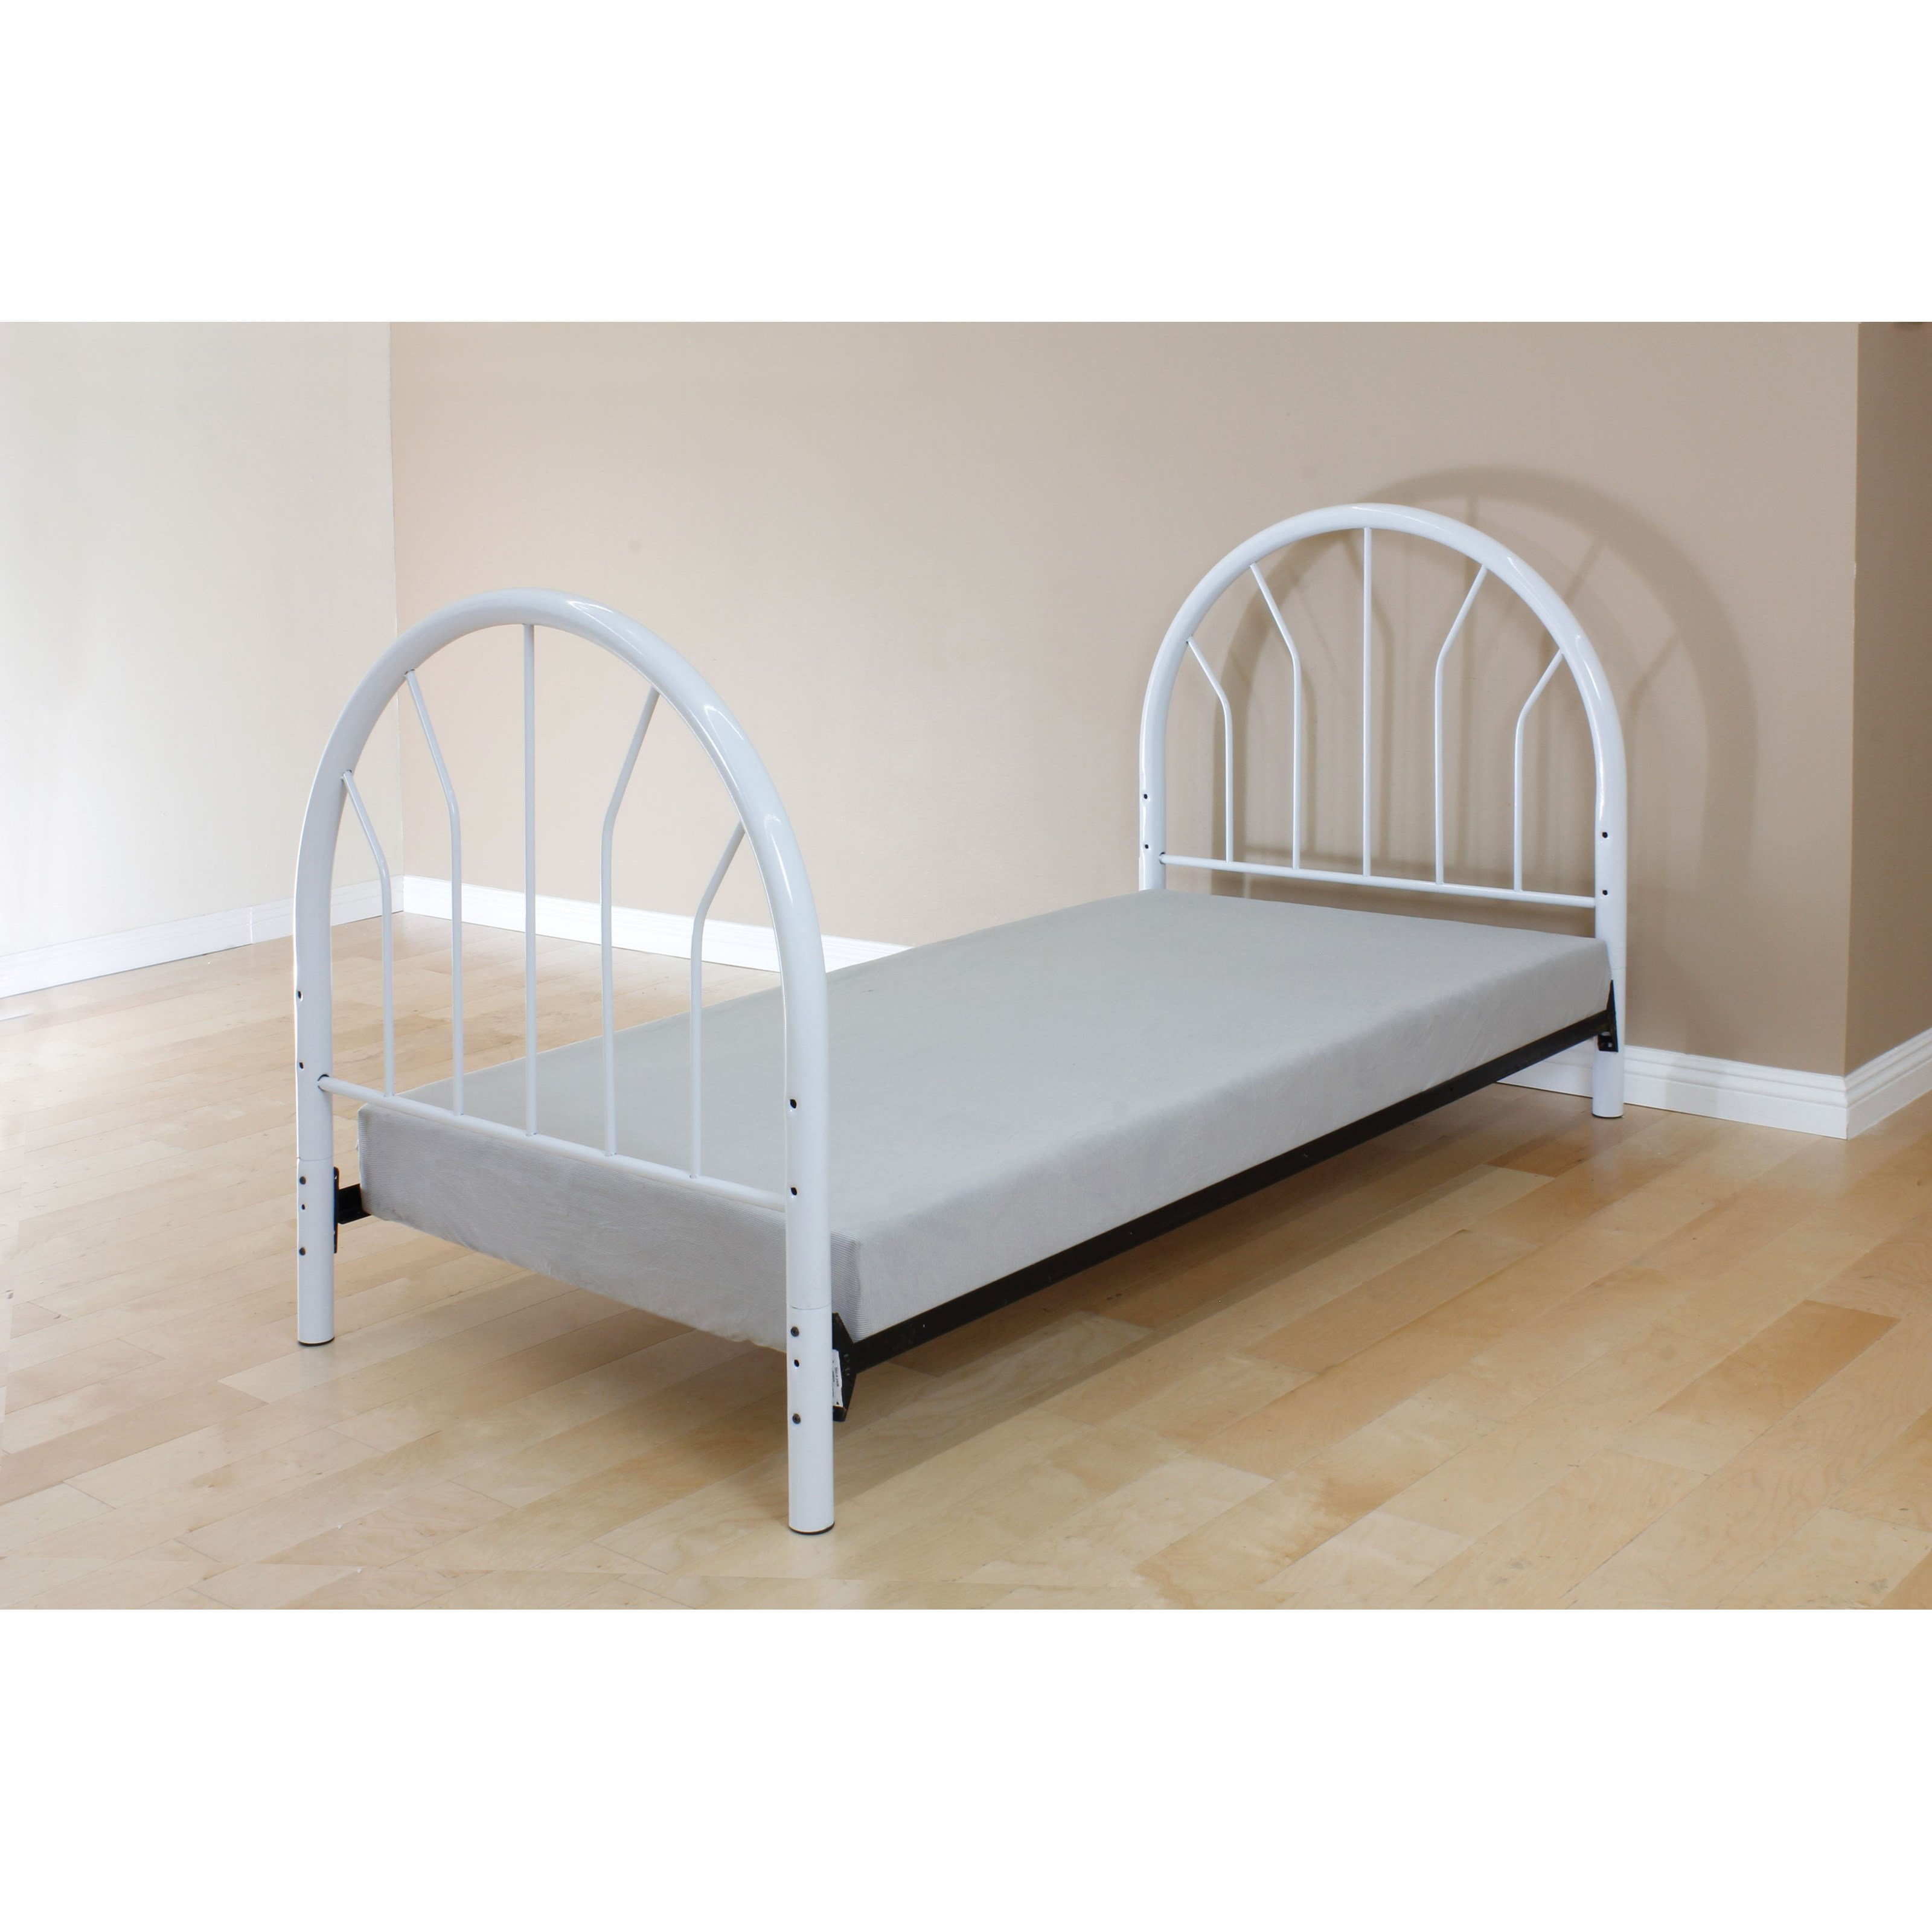 Twin Bed (Headboard/Footboard Only)